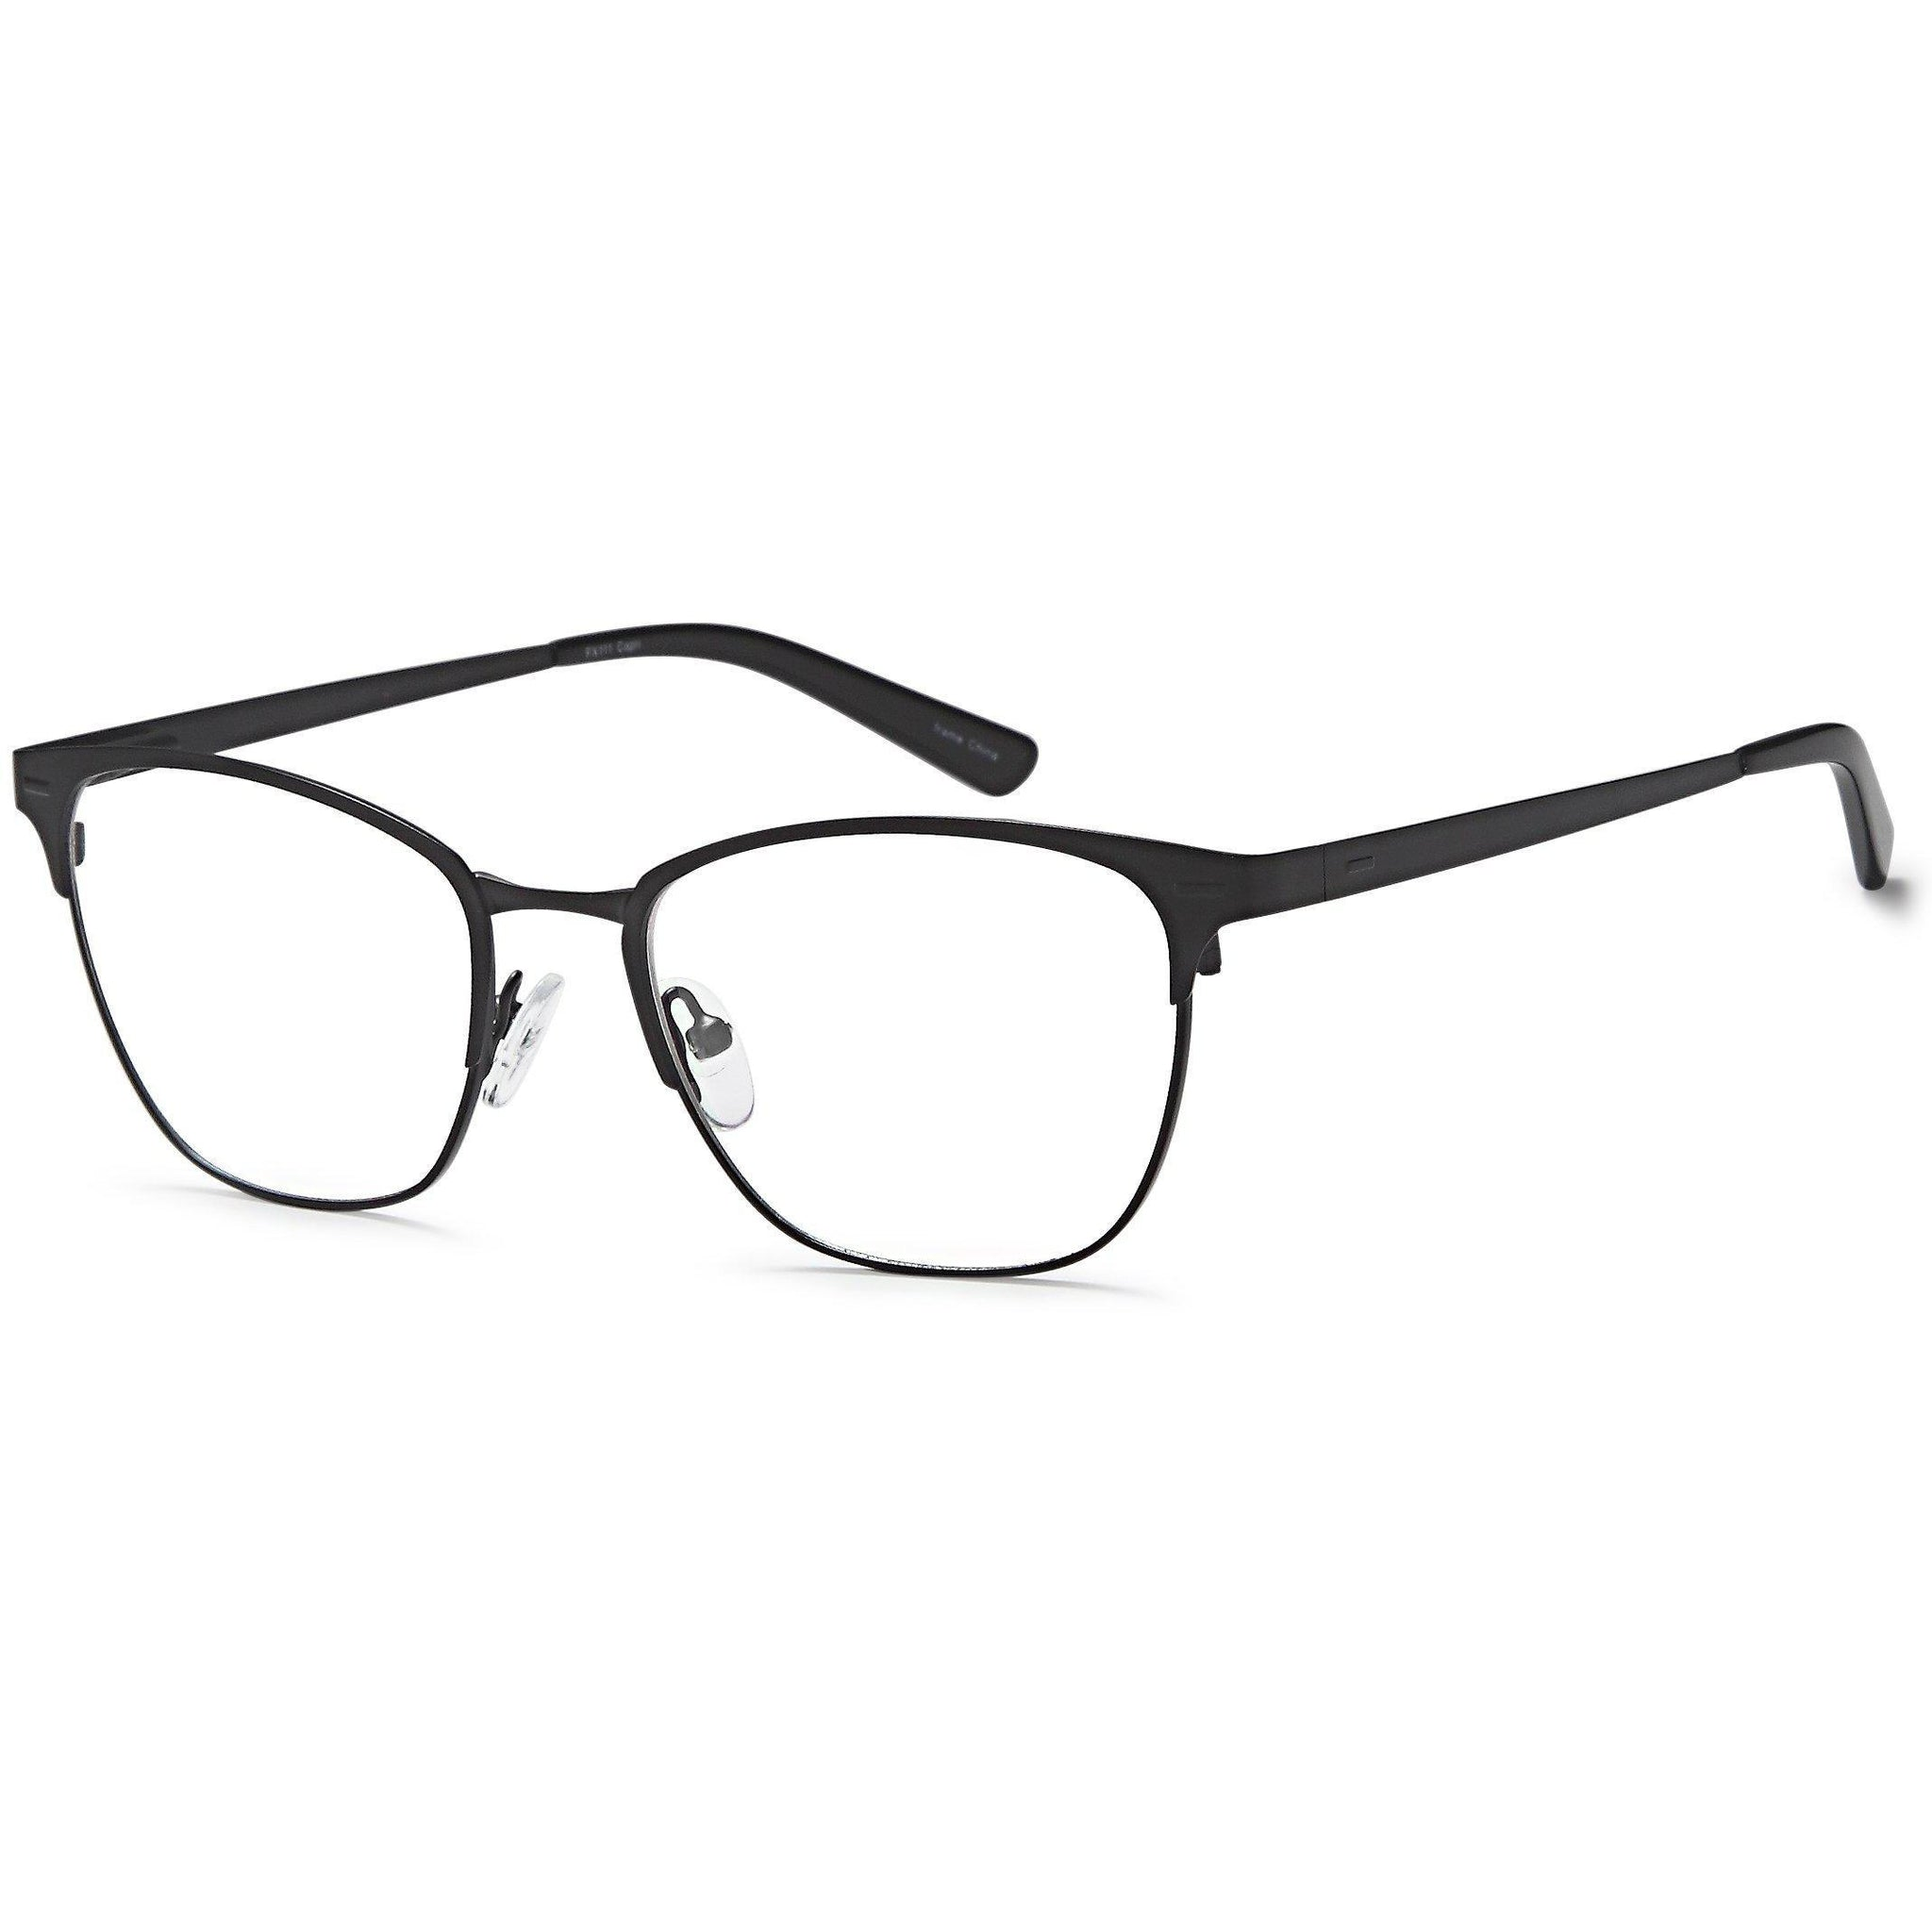 Titanium Prescription Glasses FX 111 Eyeglasses Frame